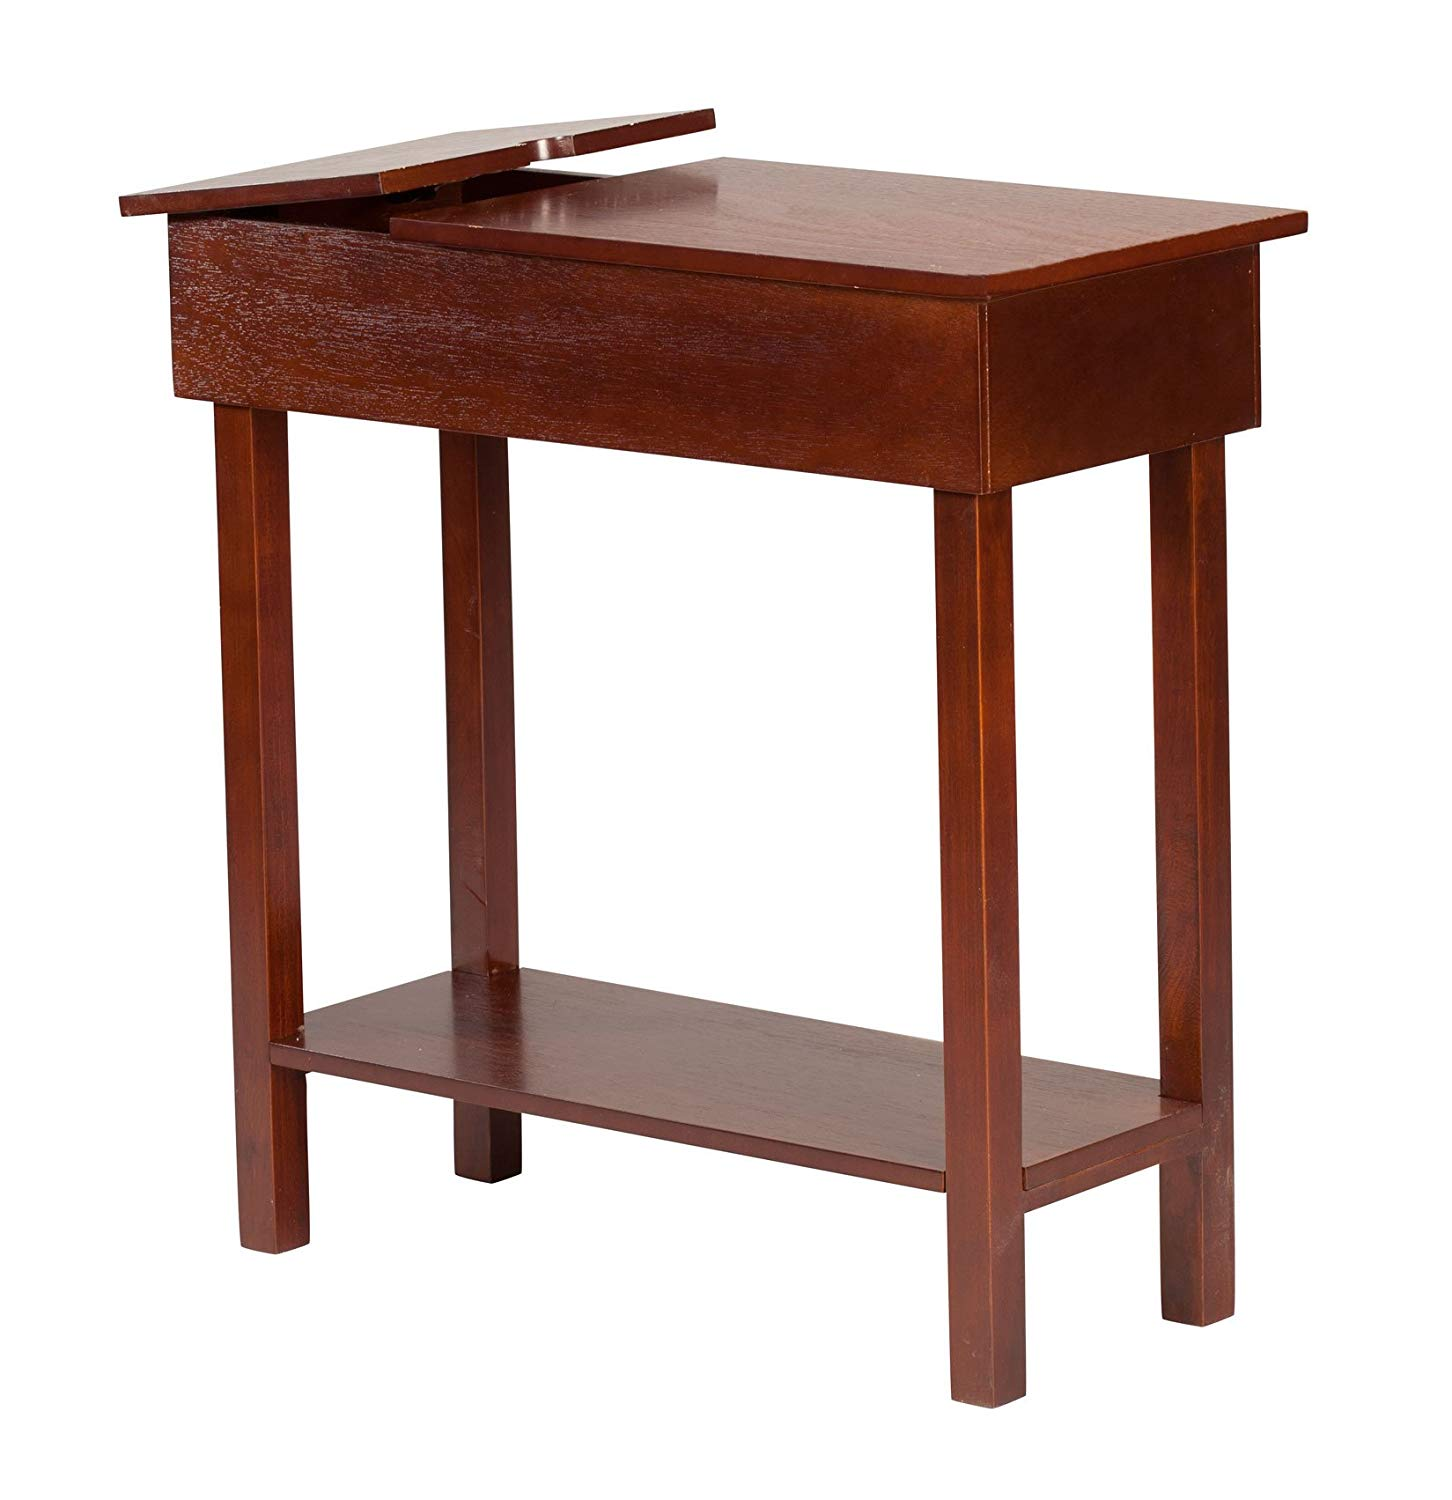 oakridge chairside table with usb power strip vtnel accent port wide brown wood finish kitchen dining homes reclaimed furniture chestnut best antique blue end gallerie credit card